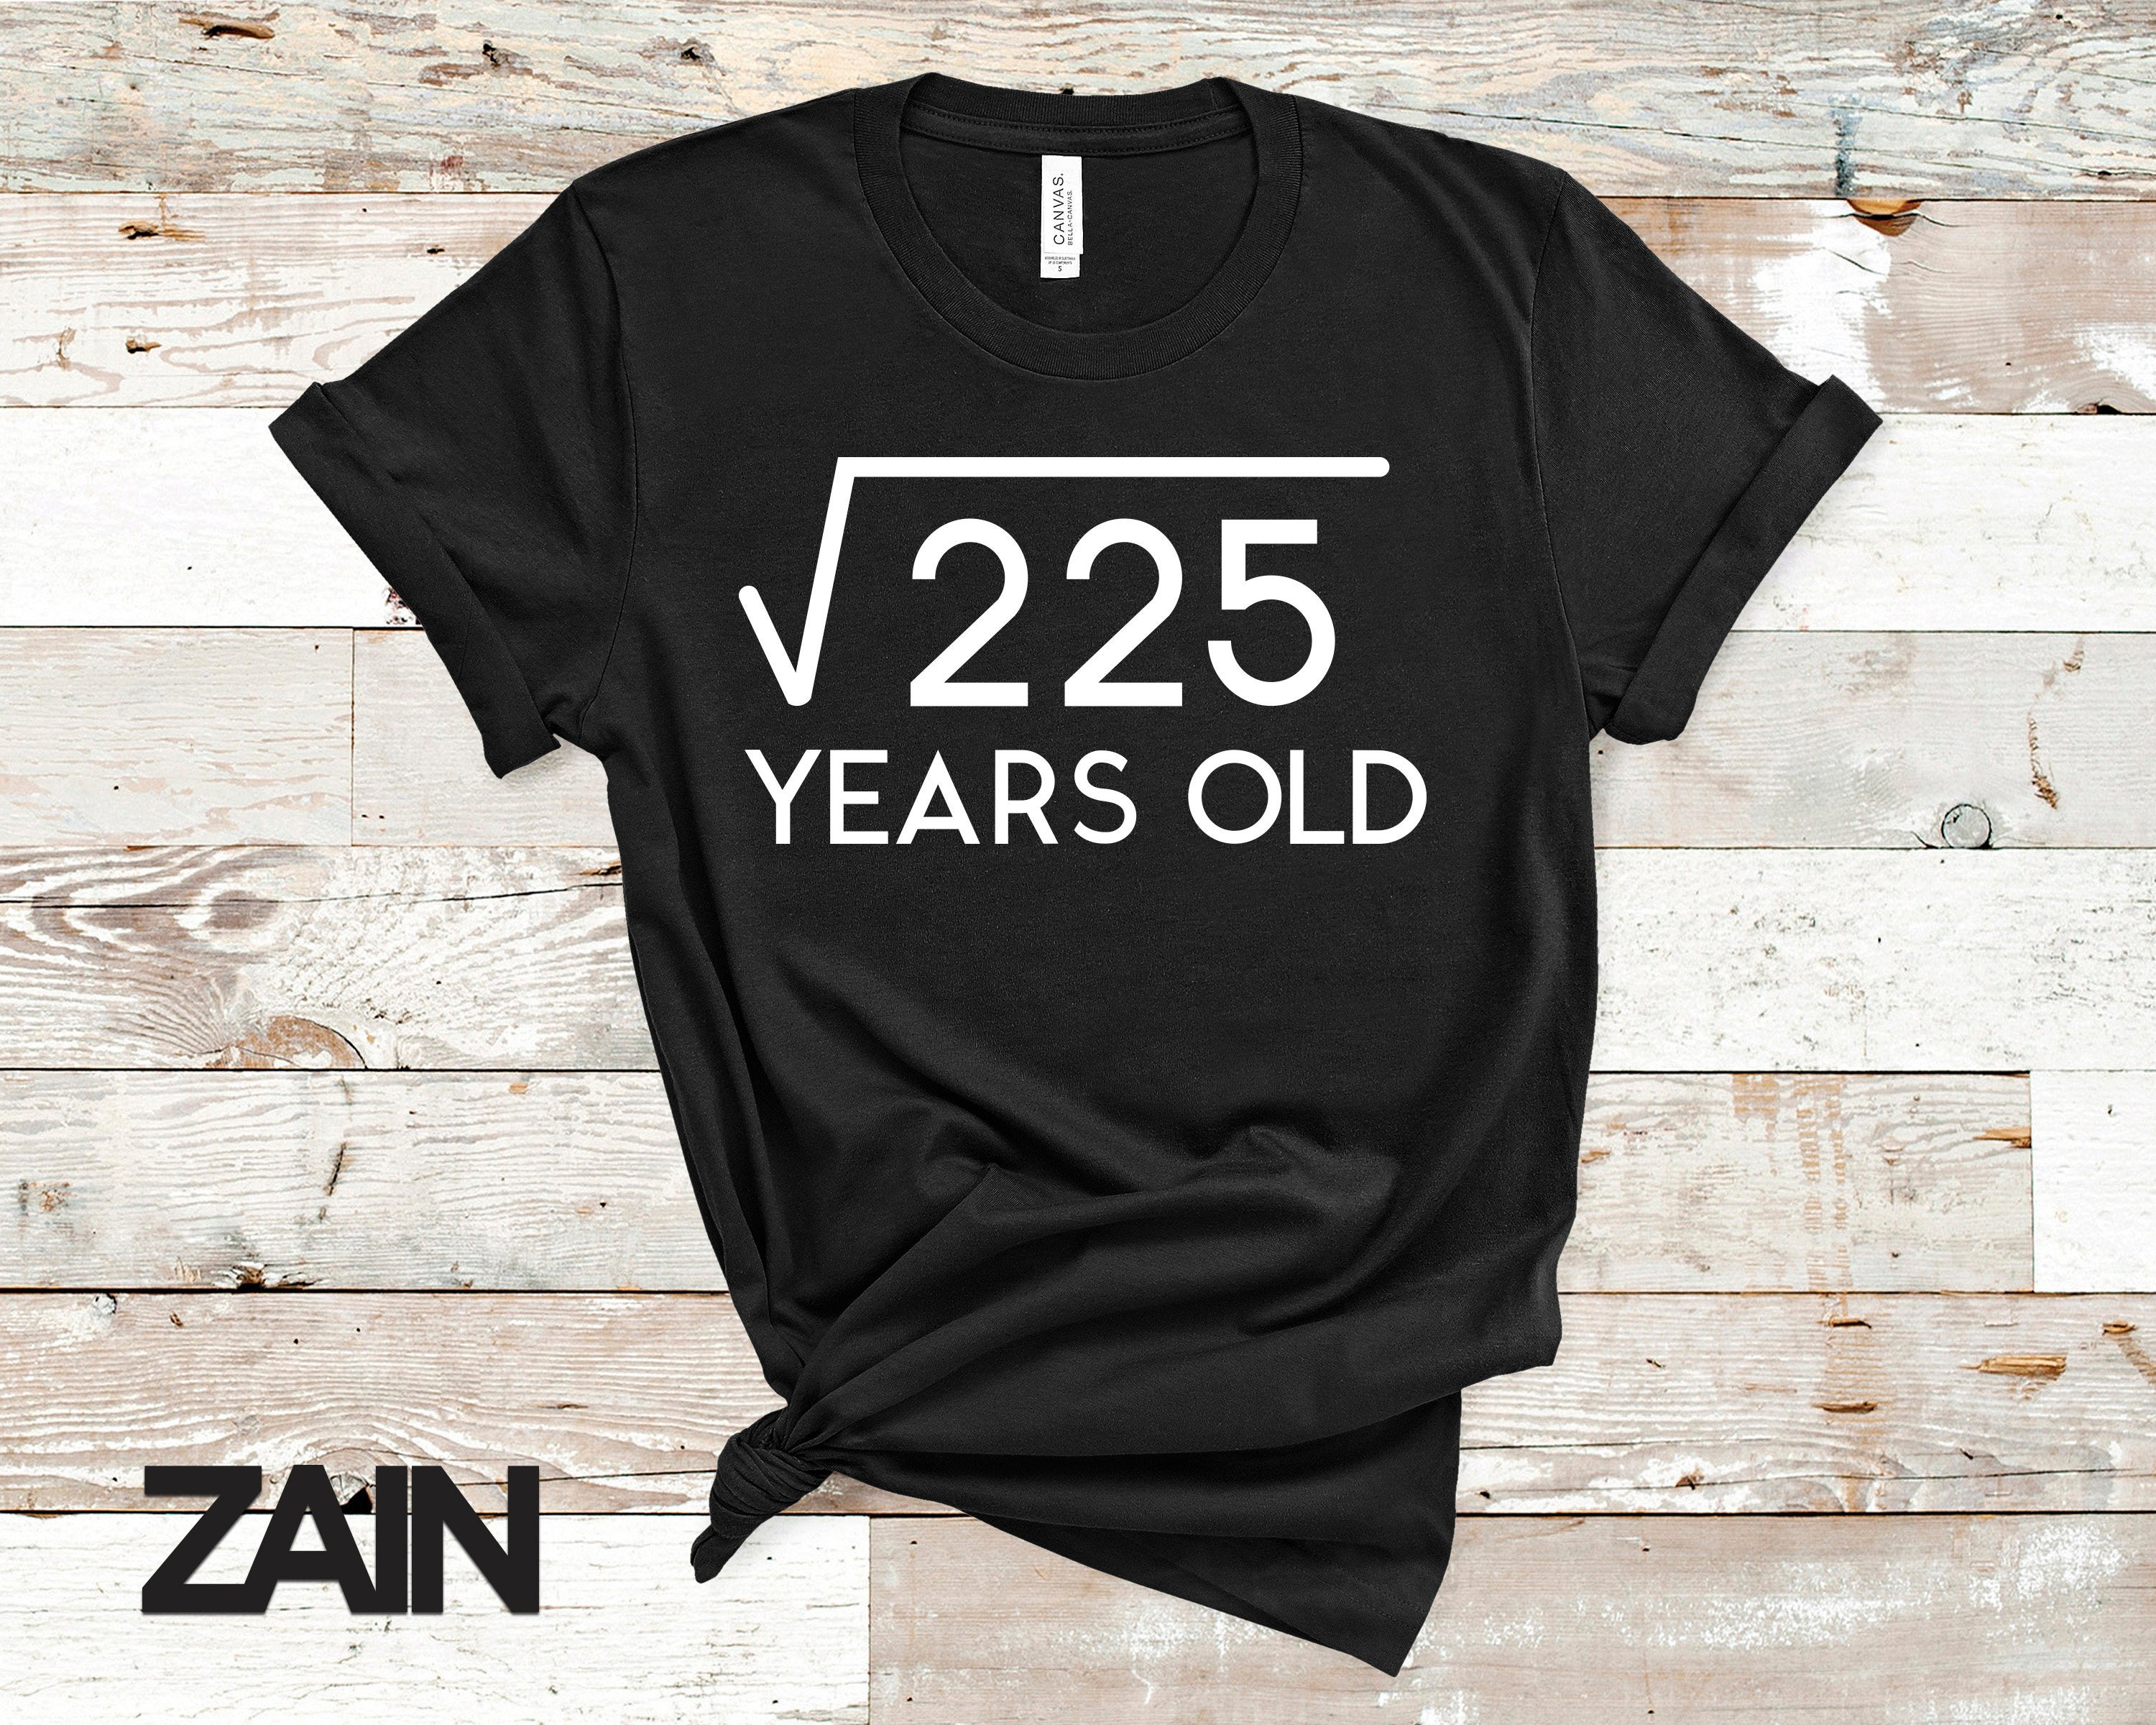 Square Root Of 255 Years Old T-Shirt,